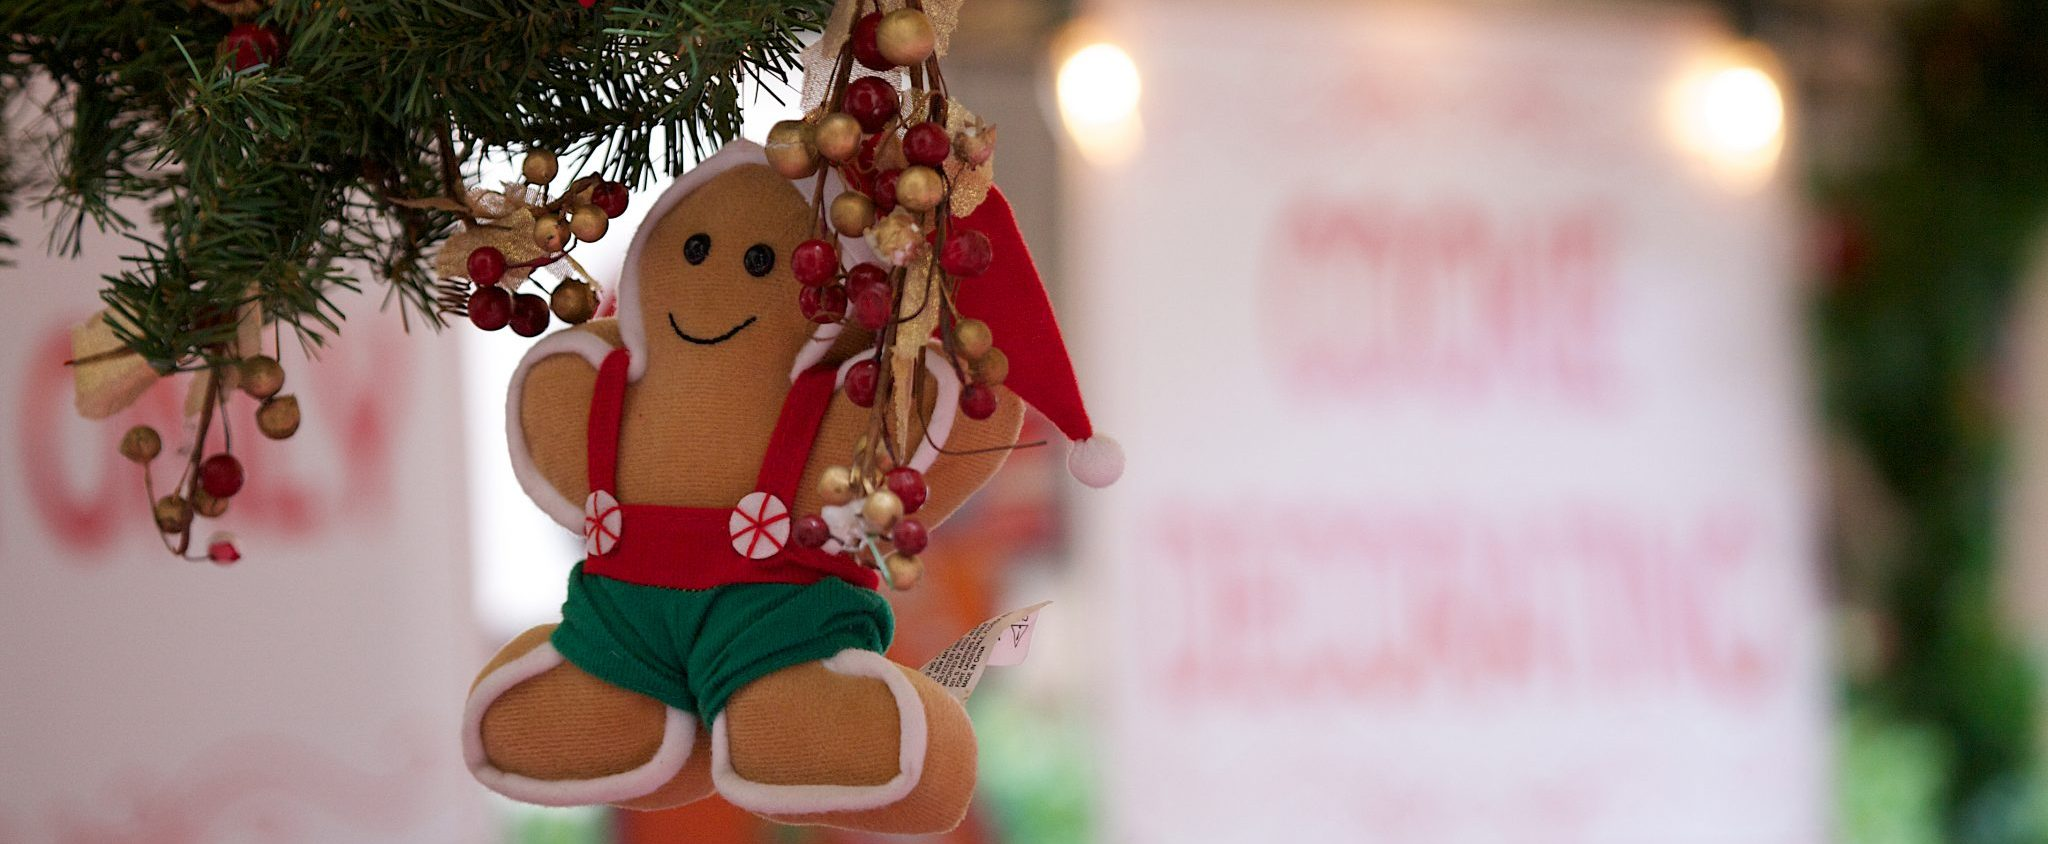 Gingerbread man ornament hanging from a Christmas tree.